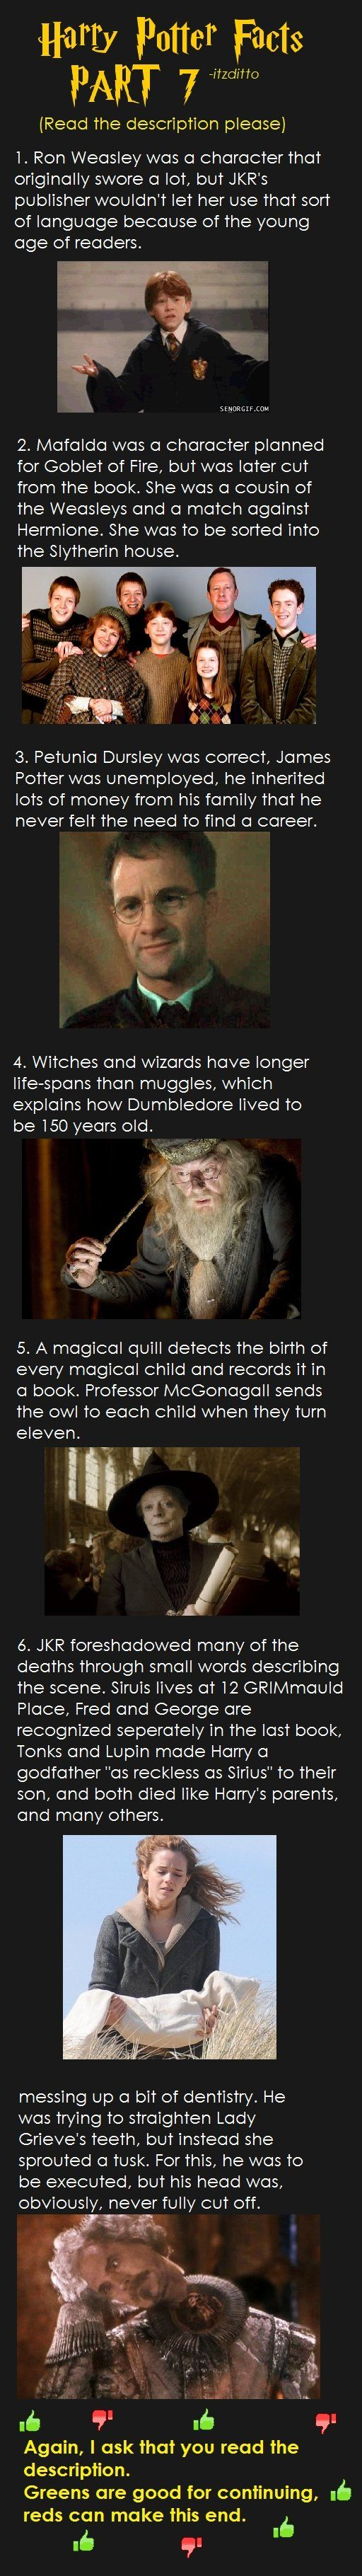 Harry Potter Facts Part 7. the last one is about Nearly Headless Nick, it was cut off :(